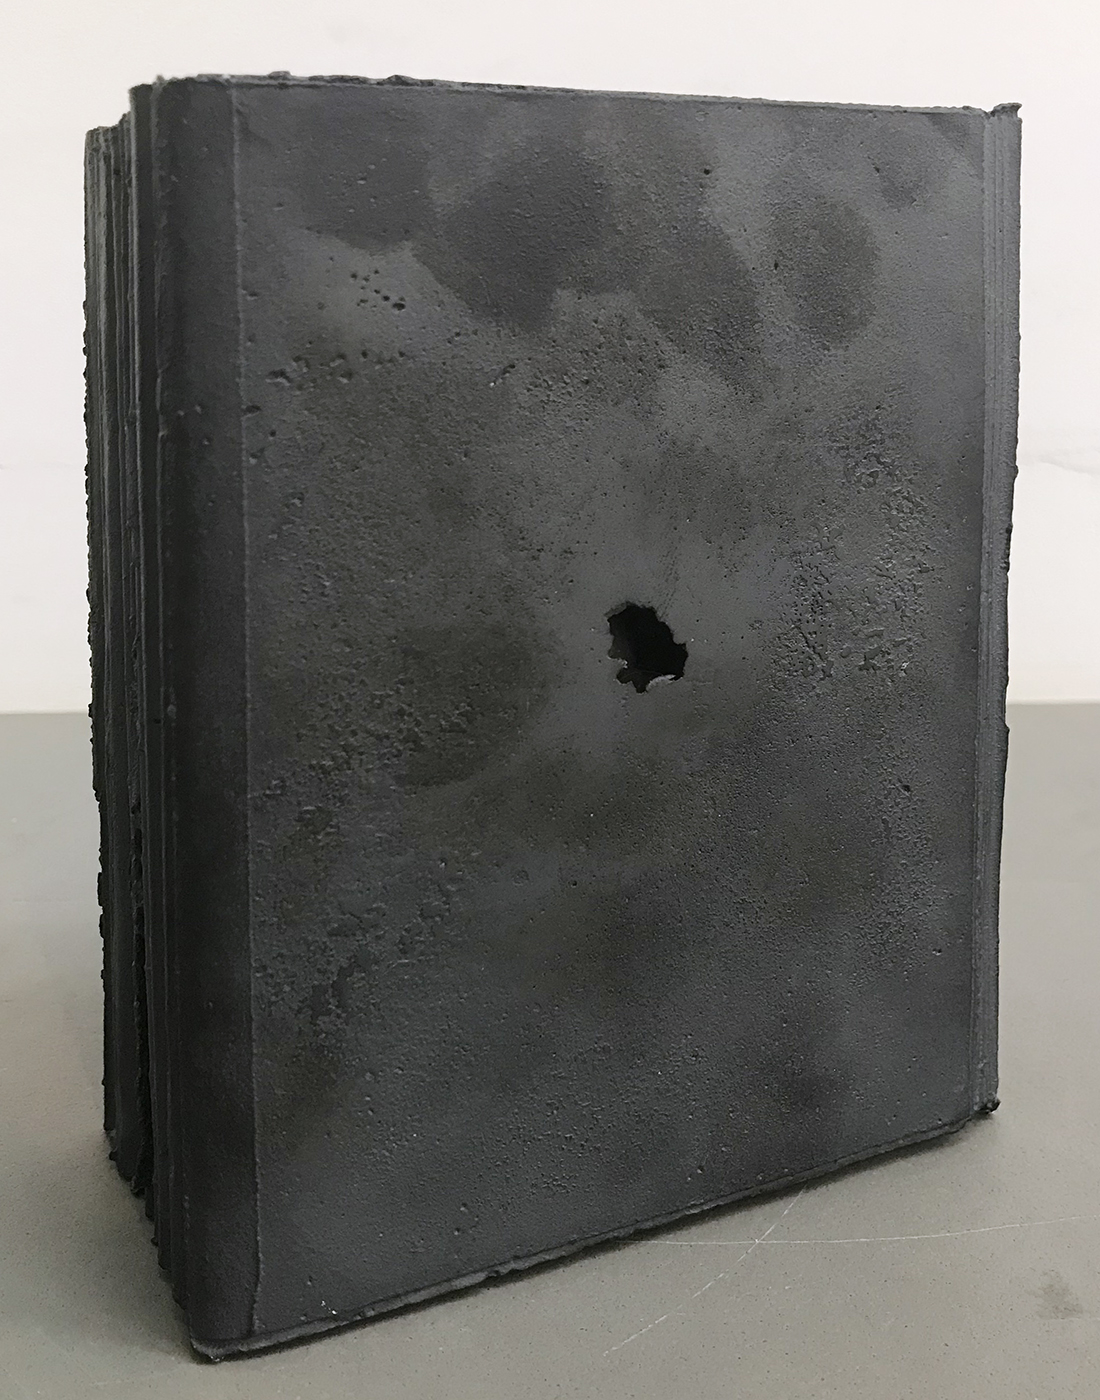 note book #51|cast iron|155 x 110 x 60 cm|2015